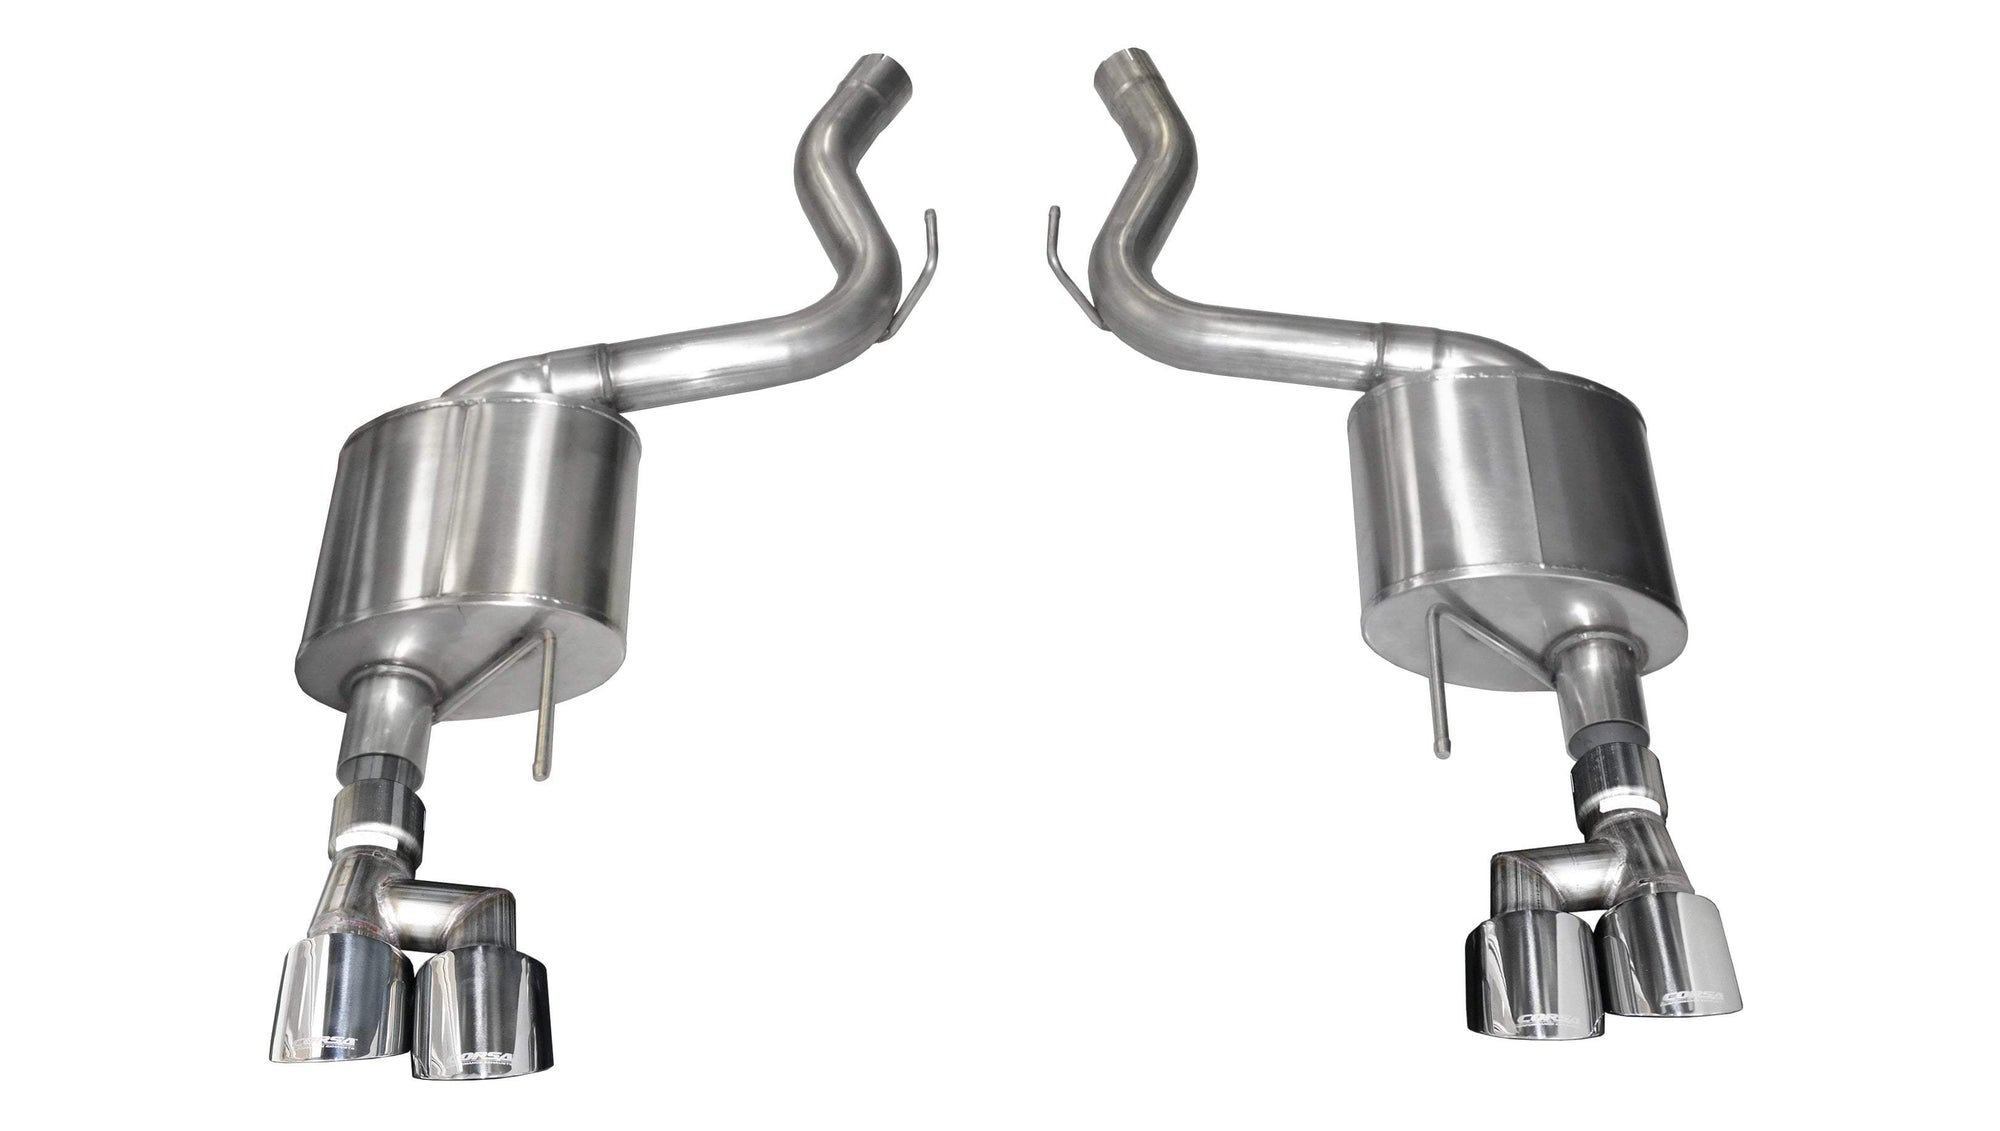 "CORSA PERFORMANCE Axle-Back Exhaust Polished / Touring / Dual Rear - Twin 4.0in 2018-2019 Ford Mustang GT, 5.0L V8, 3.0"" Dual Rear Exit Axle-Back Exhaust System with Twin 4.0"" Tips (21041) Touring Sound Level"